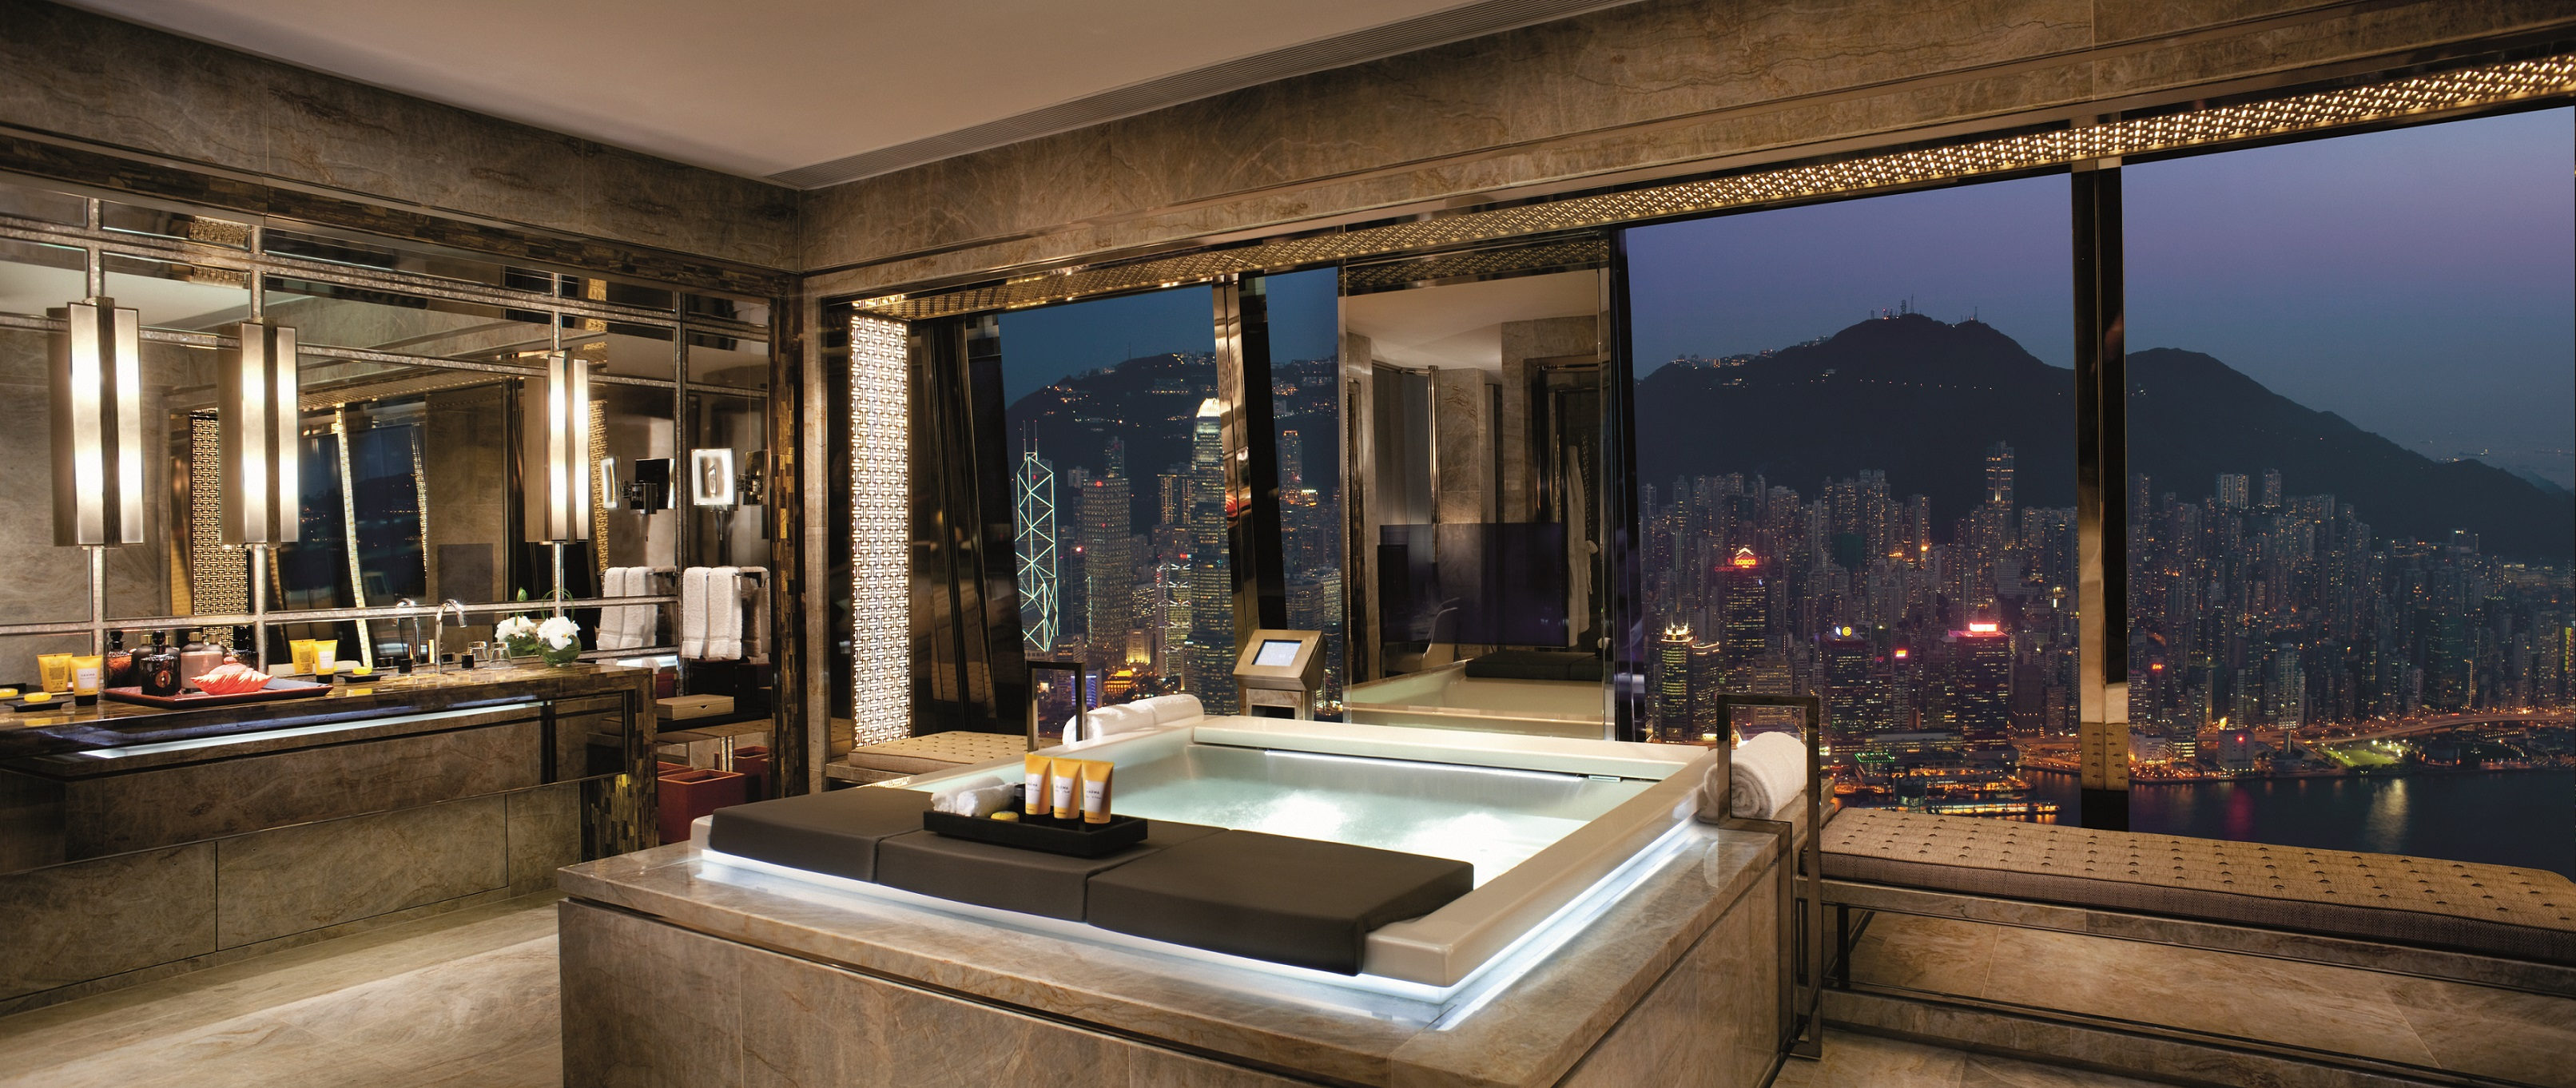 Luxury Bathroom discover the world's best luxury bathrooms